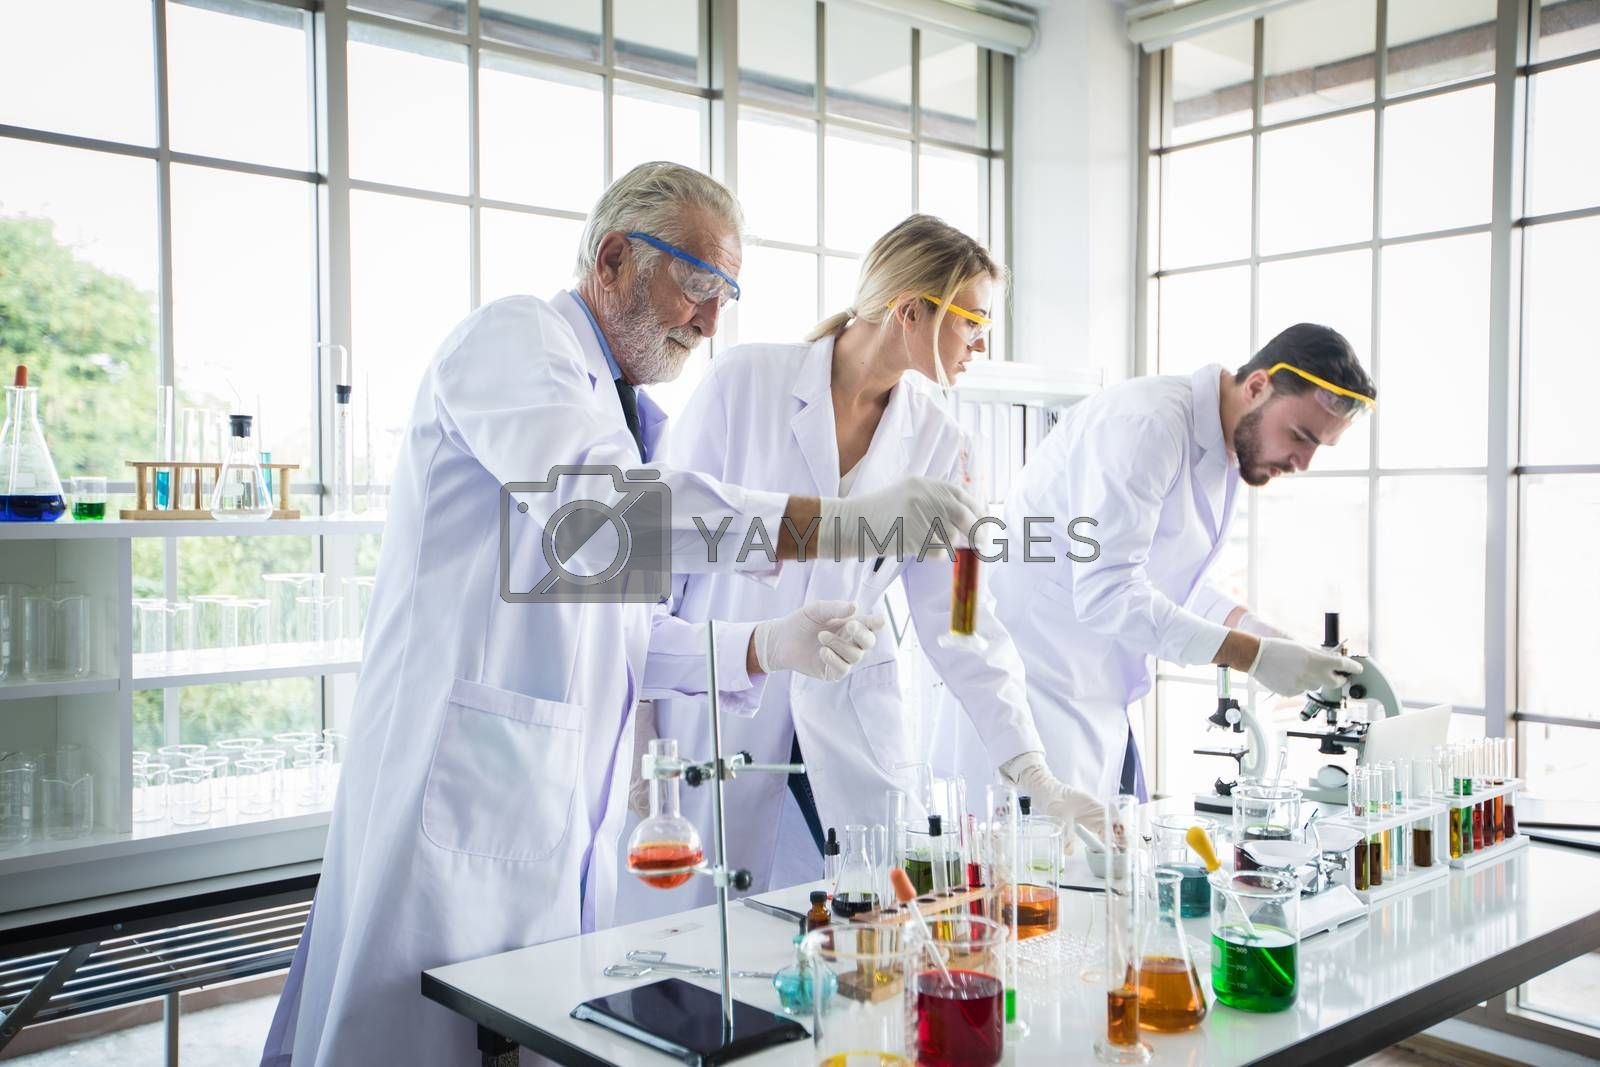 Medical Research and Scientists are working with a microscope and a tablet and Test Tubes, Micropipette and Analysis Results in a laboratory.